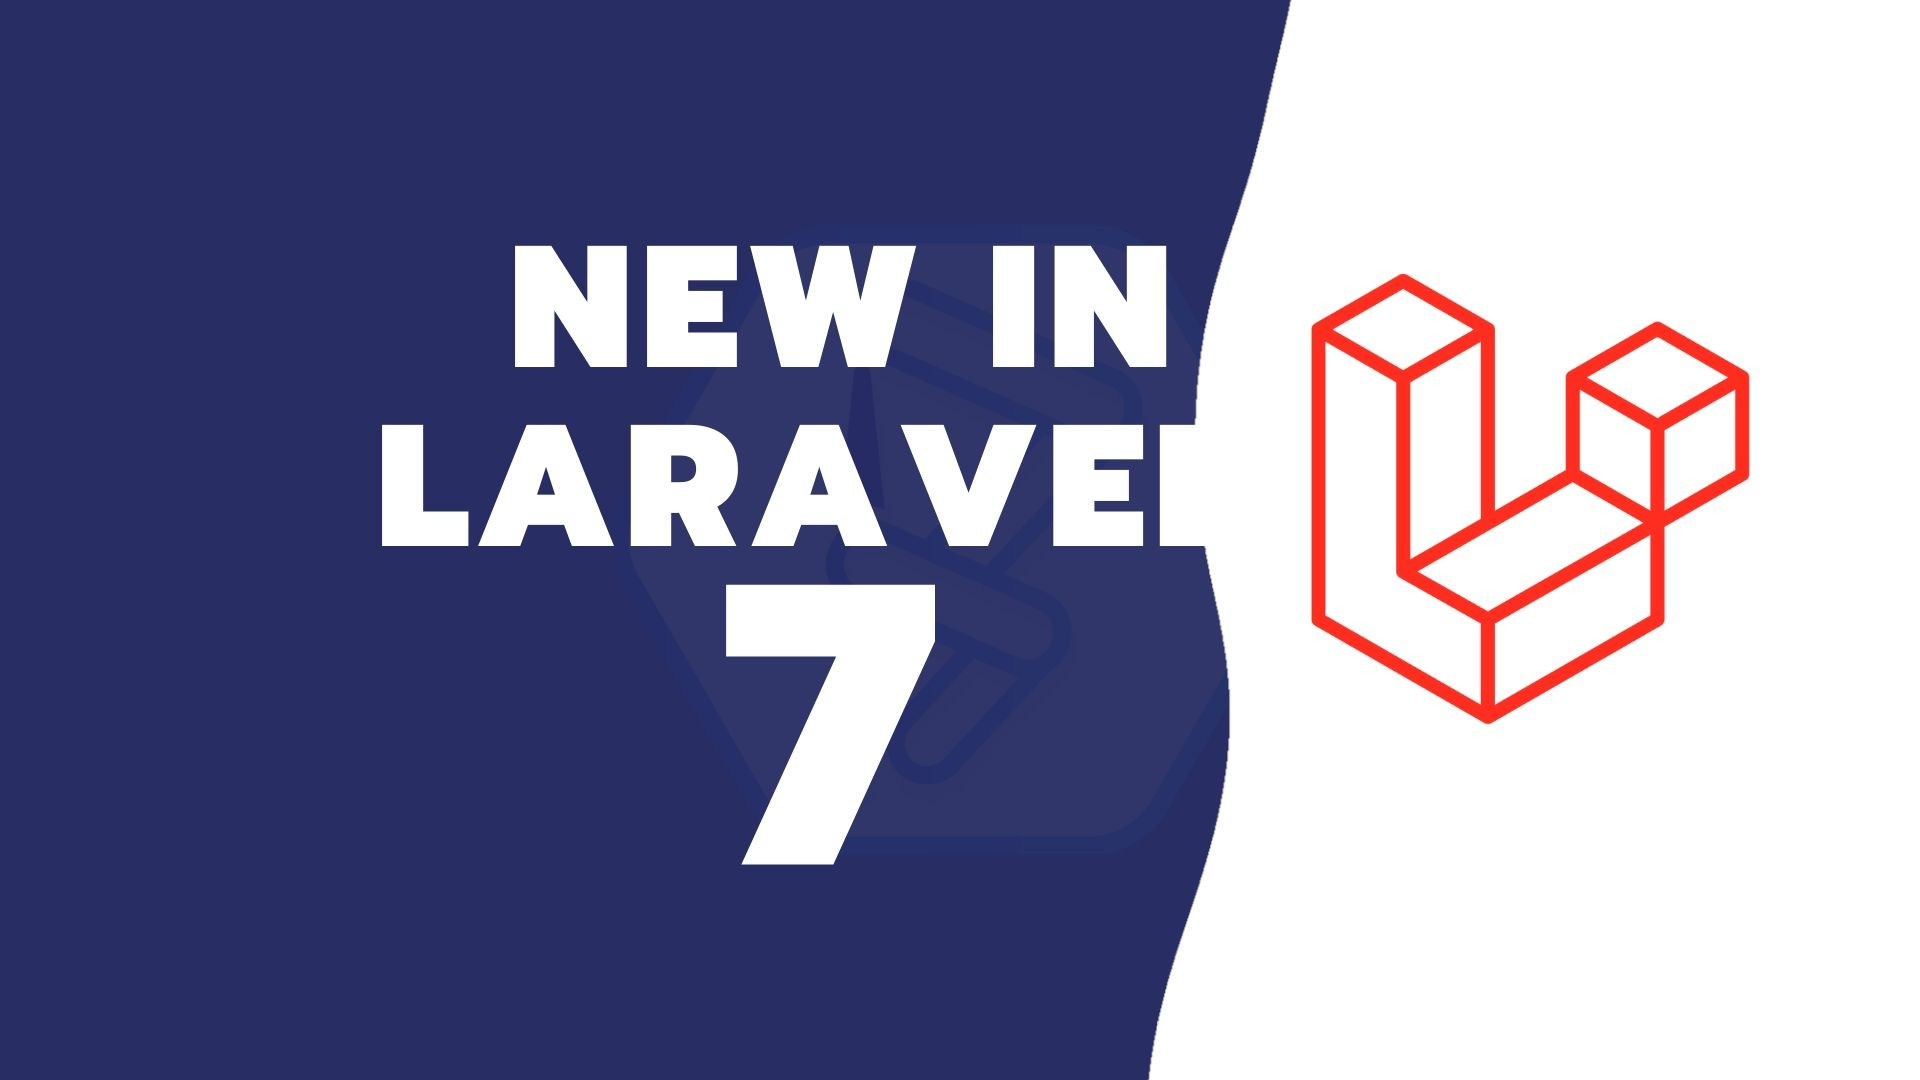 What's new in Laravel 7